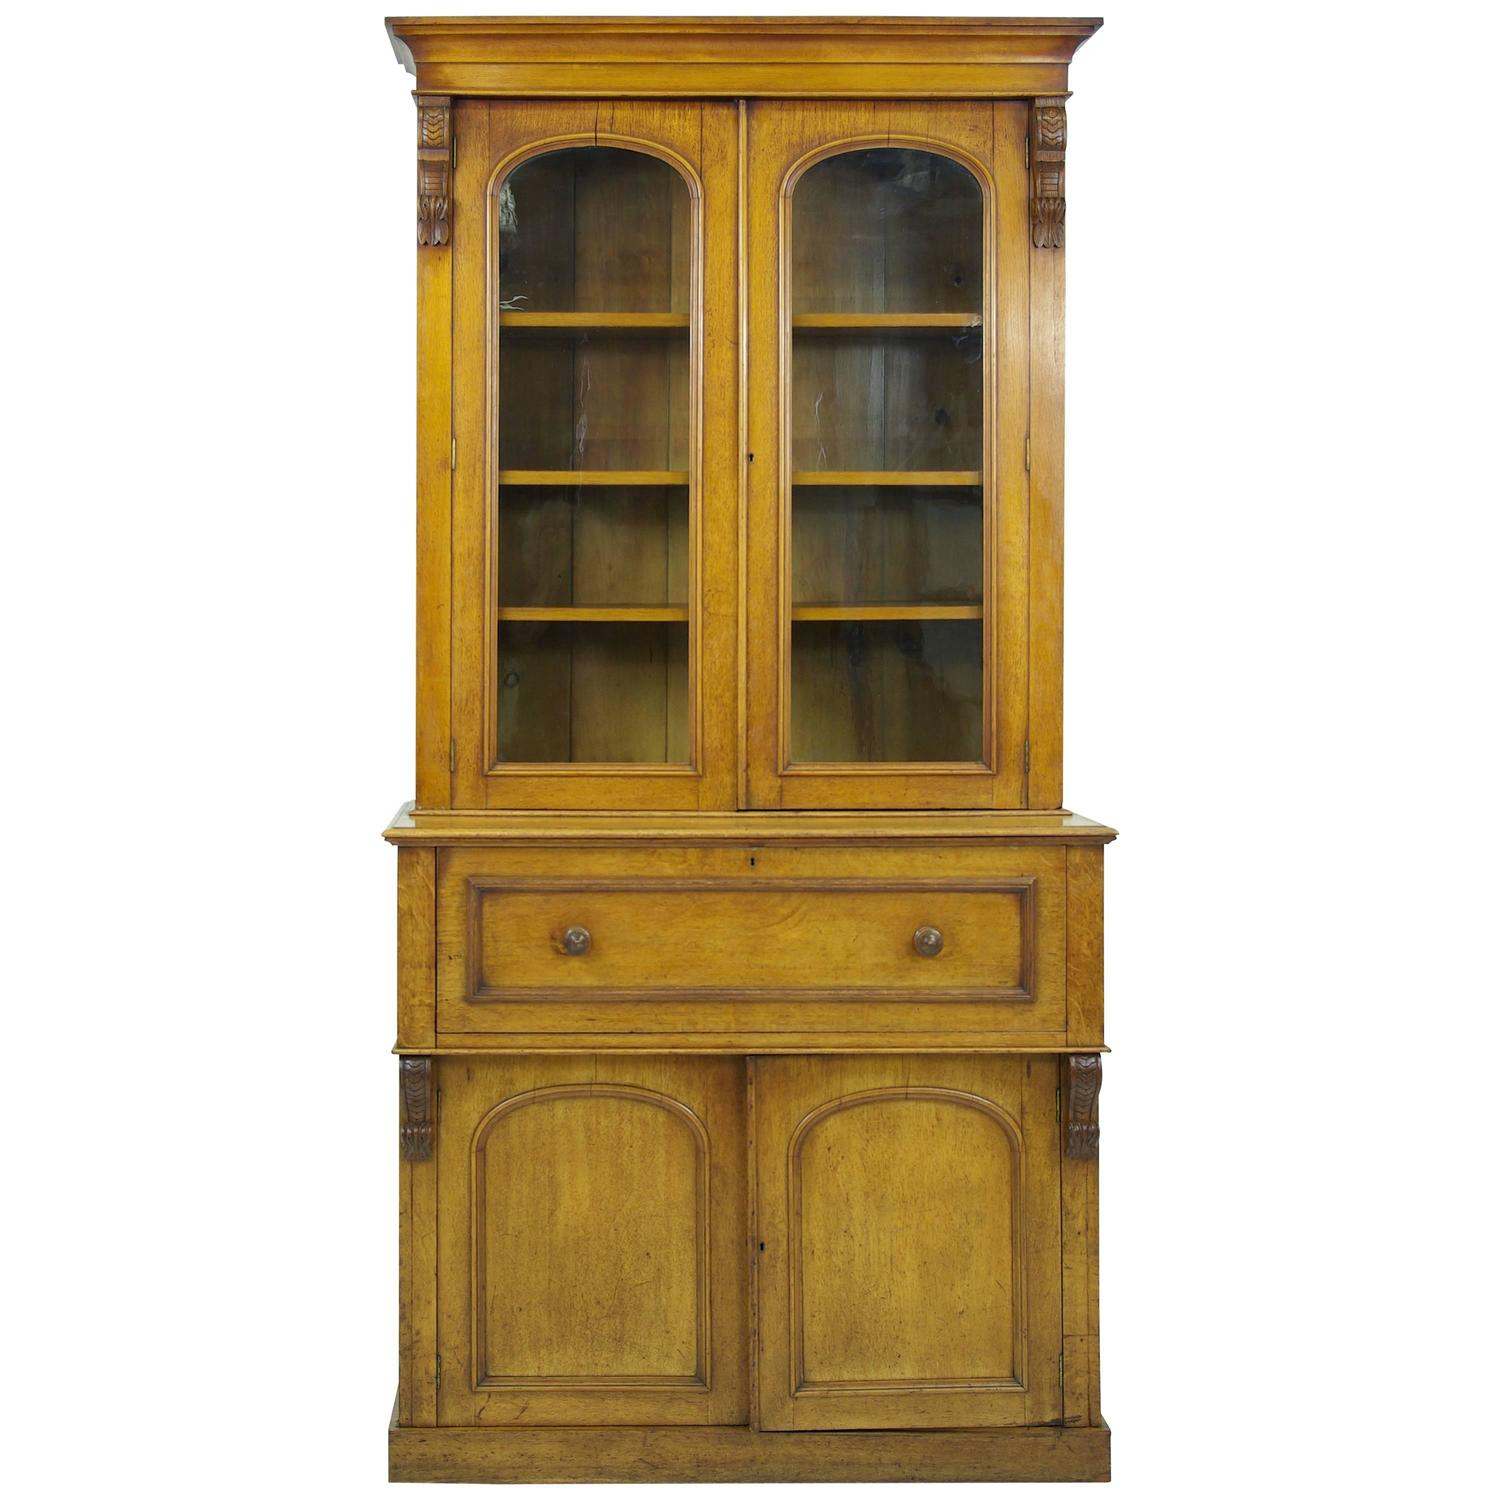 B304 Antique Scottish Victorian Oak Secretary, Fall Front Desk/Bookcase  Cabinet at 1stdibs - B304 Antique Scottish Victorian Oak Secretary, Fall Front Desk